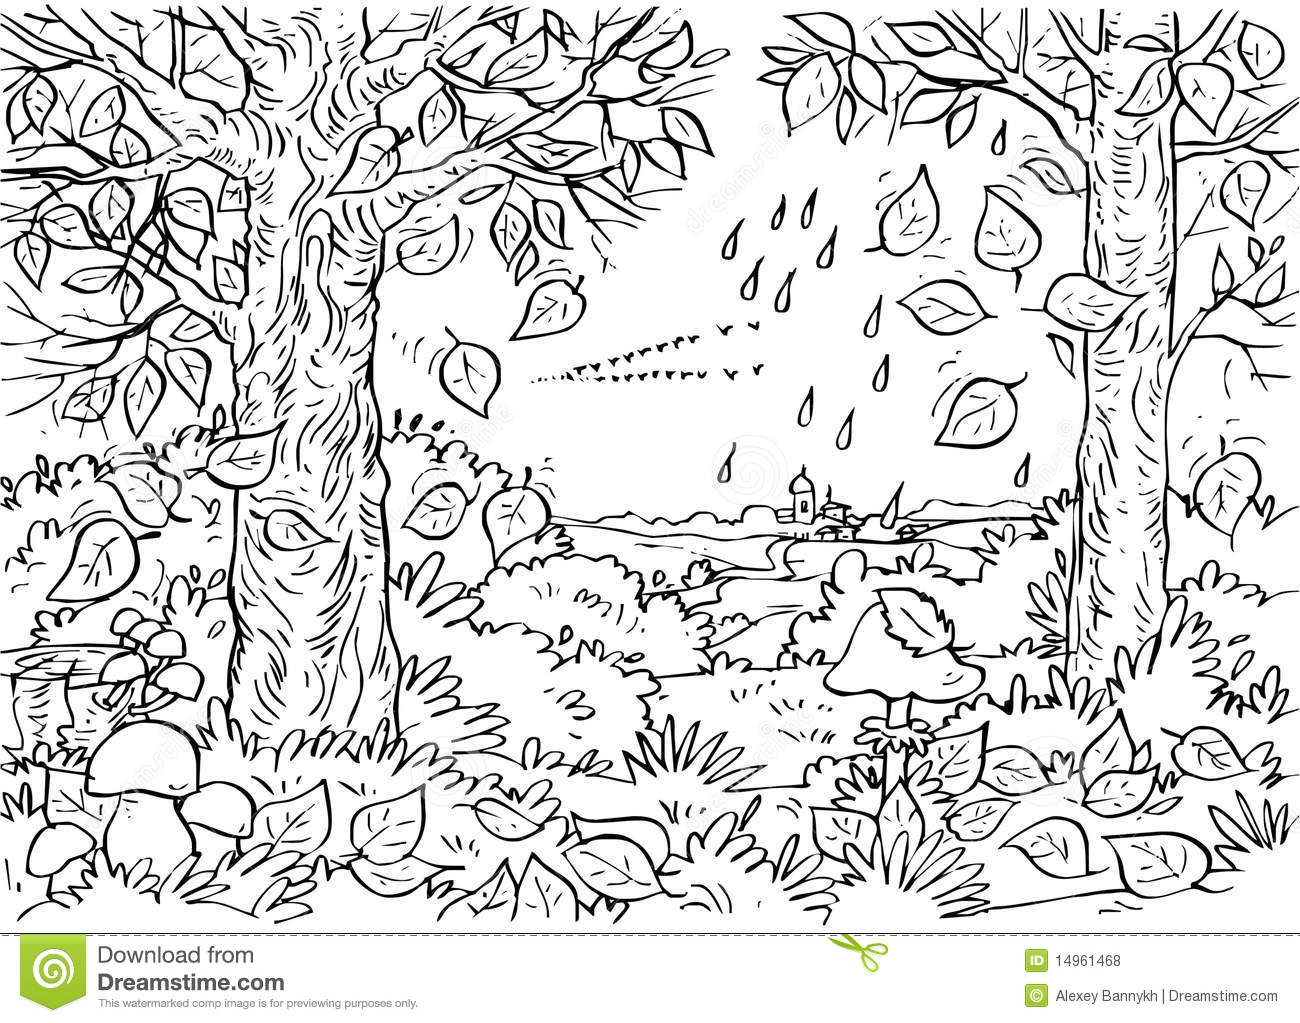 Forest clipart black and white 5 » Clipart Station.